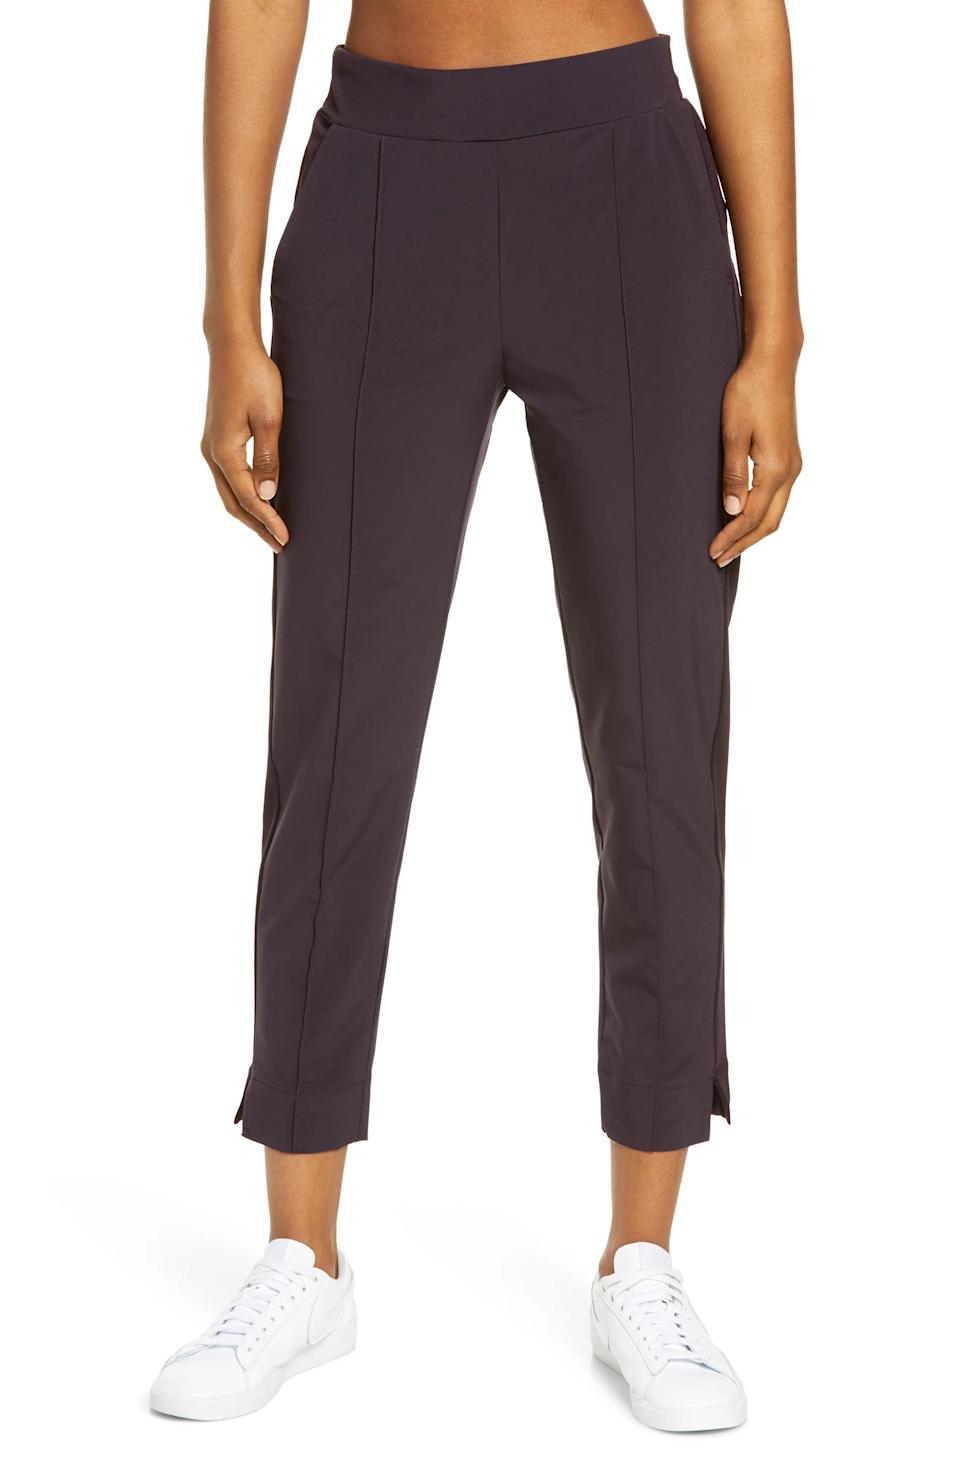 """<h2>Zella Getaway Pants</h2><br>In case you haven't picked up on it, we're big fans of the cropped trouser look. Aptly named Getaway Pants, these bottoms were specifically created for long-distance travel. They're even topped with an elastic waistband for optimal comfort.<br><br><em>Shop <a href=""""https://www.nordstrom.com/brands/zella--5227?origin=productBrandLink"""" rel=""""nofollow noopener"""" target=""""_blank"""" data-ylk=""""slk:Zella"""" class=""""link rapid-noclick-resp""""><strong>Zella</strong></a></em><br><br><strong>Zella</strong> Getaway Pants, $, available at <a href=""""https://go.skimresources.com/?id=30283X879131&url=https%3A%2F%2Fwww.nordstrom.com%2Fs%2Fzella-getaway-pants%2F5459384%3Forigin%3Dcategory-personalizedsort%26breadcrumb%3DHome%252FActivewear%252FWomen%2527s%2520Activewear%252FSweatpants%2520%2526%2520Joggers%26color%3D001"""" rel=""""nofollow noopener"""" target=""""_blank"""" data-ylk=""""slk:Nordstrom"""" class=""""link rapid-noclick-resp"""">Nordstrom</a>"""